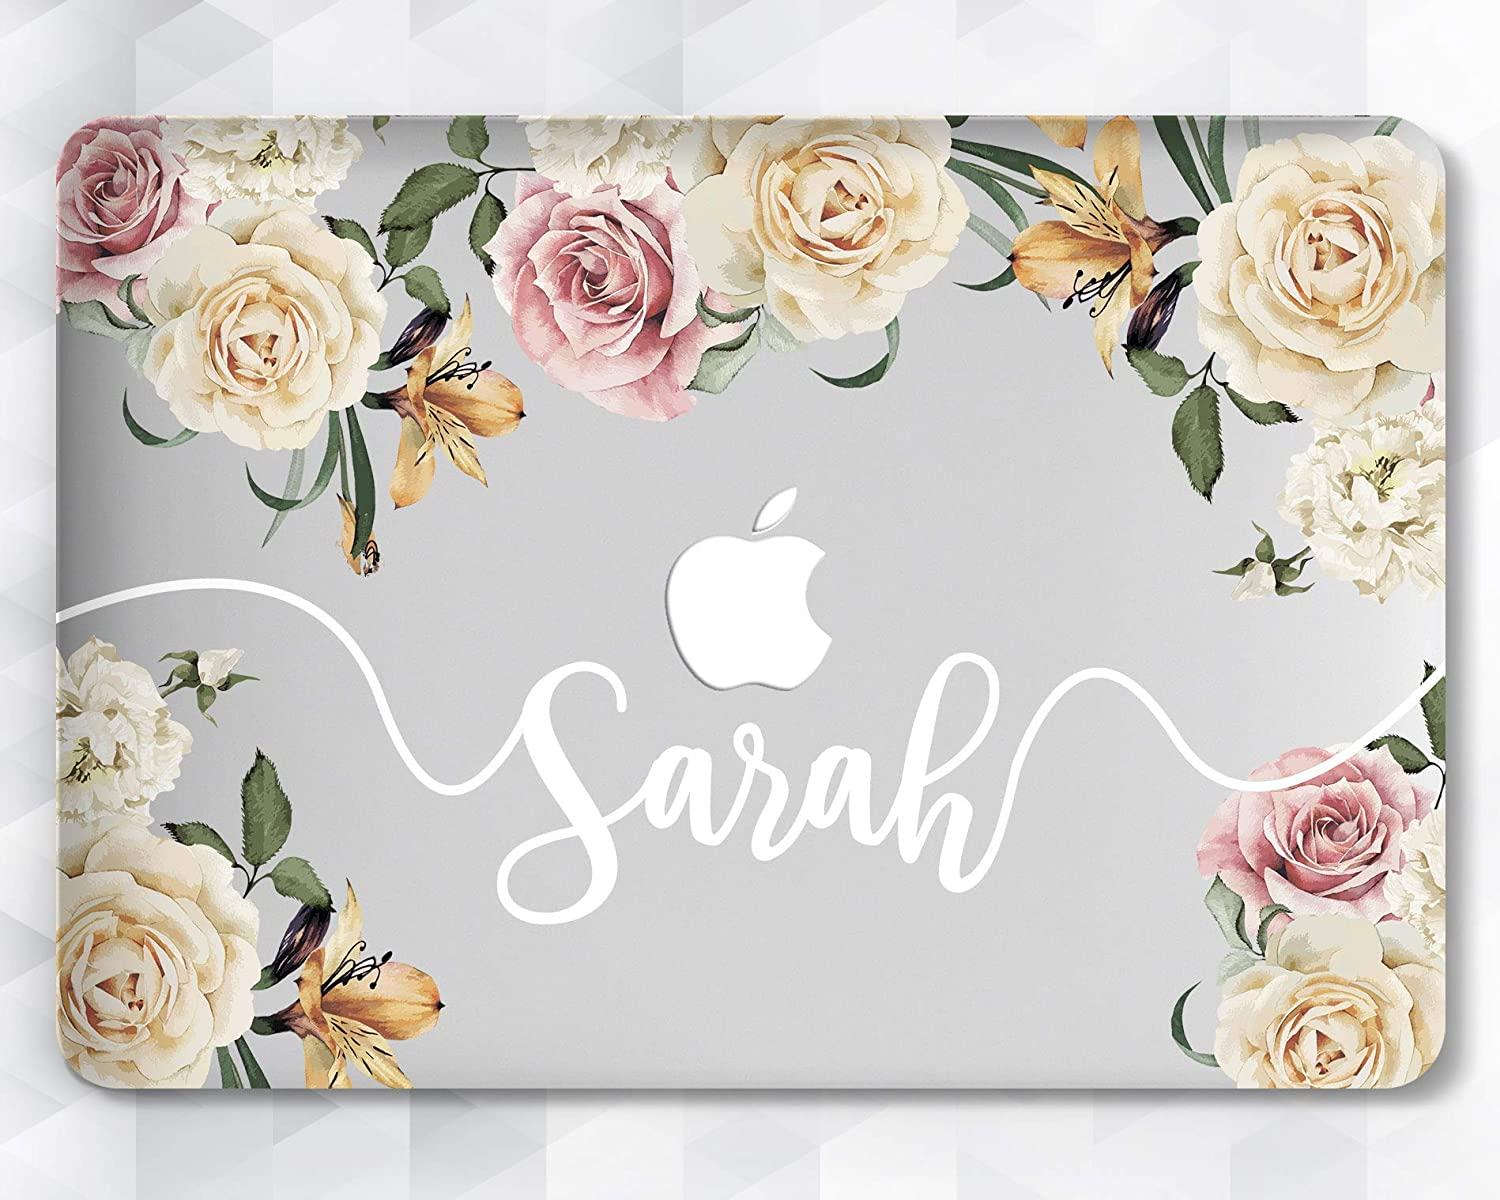 Floral Custom Name Flower Girly Case For Apple Macbook 12 Air 11 13 Pro 13 15 2016/2017/2018 Inch Retina Display Touch Bar